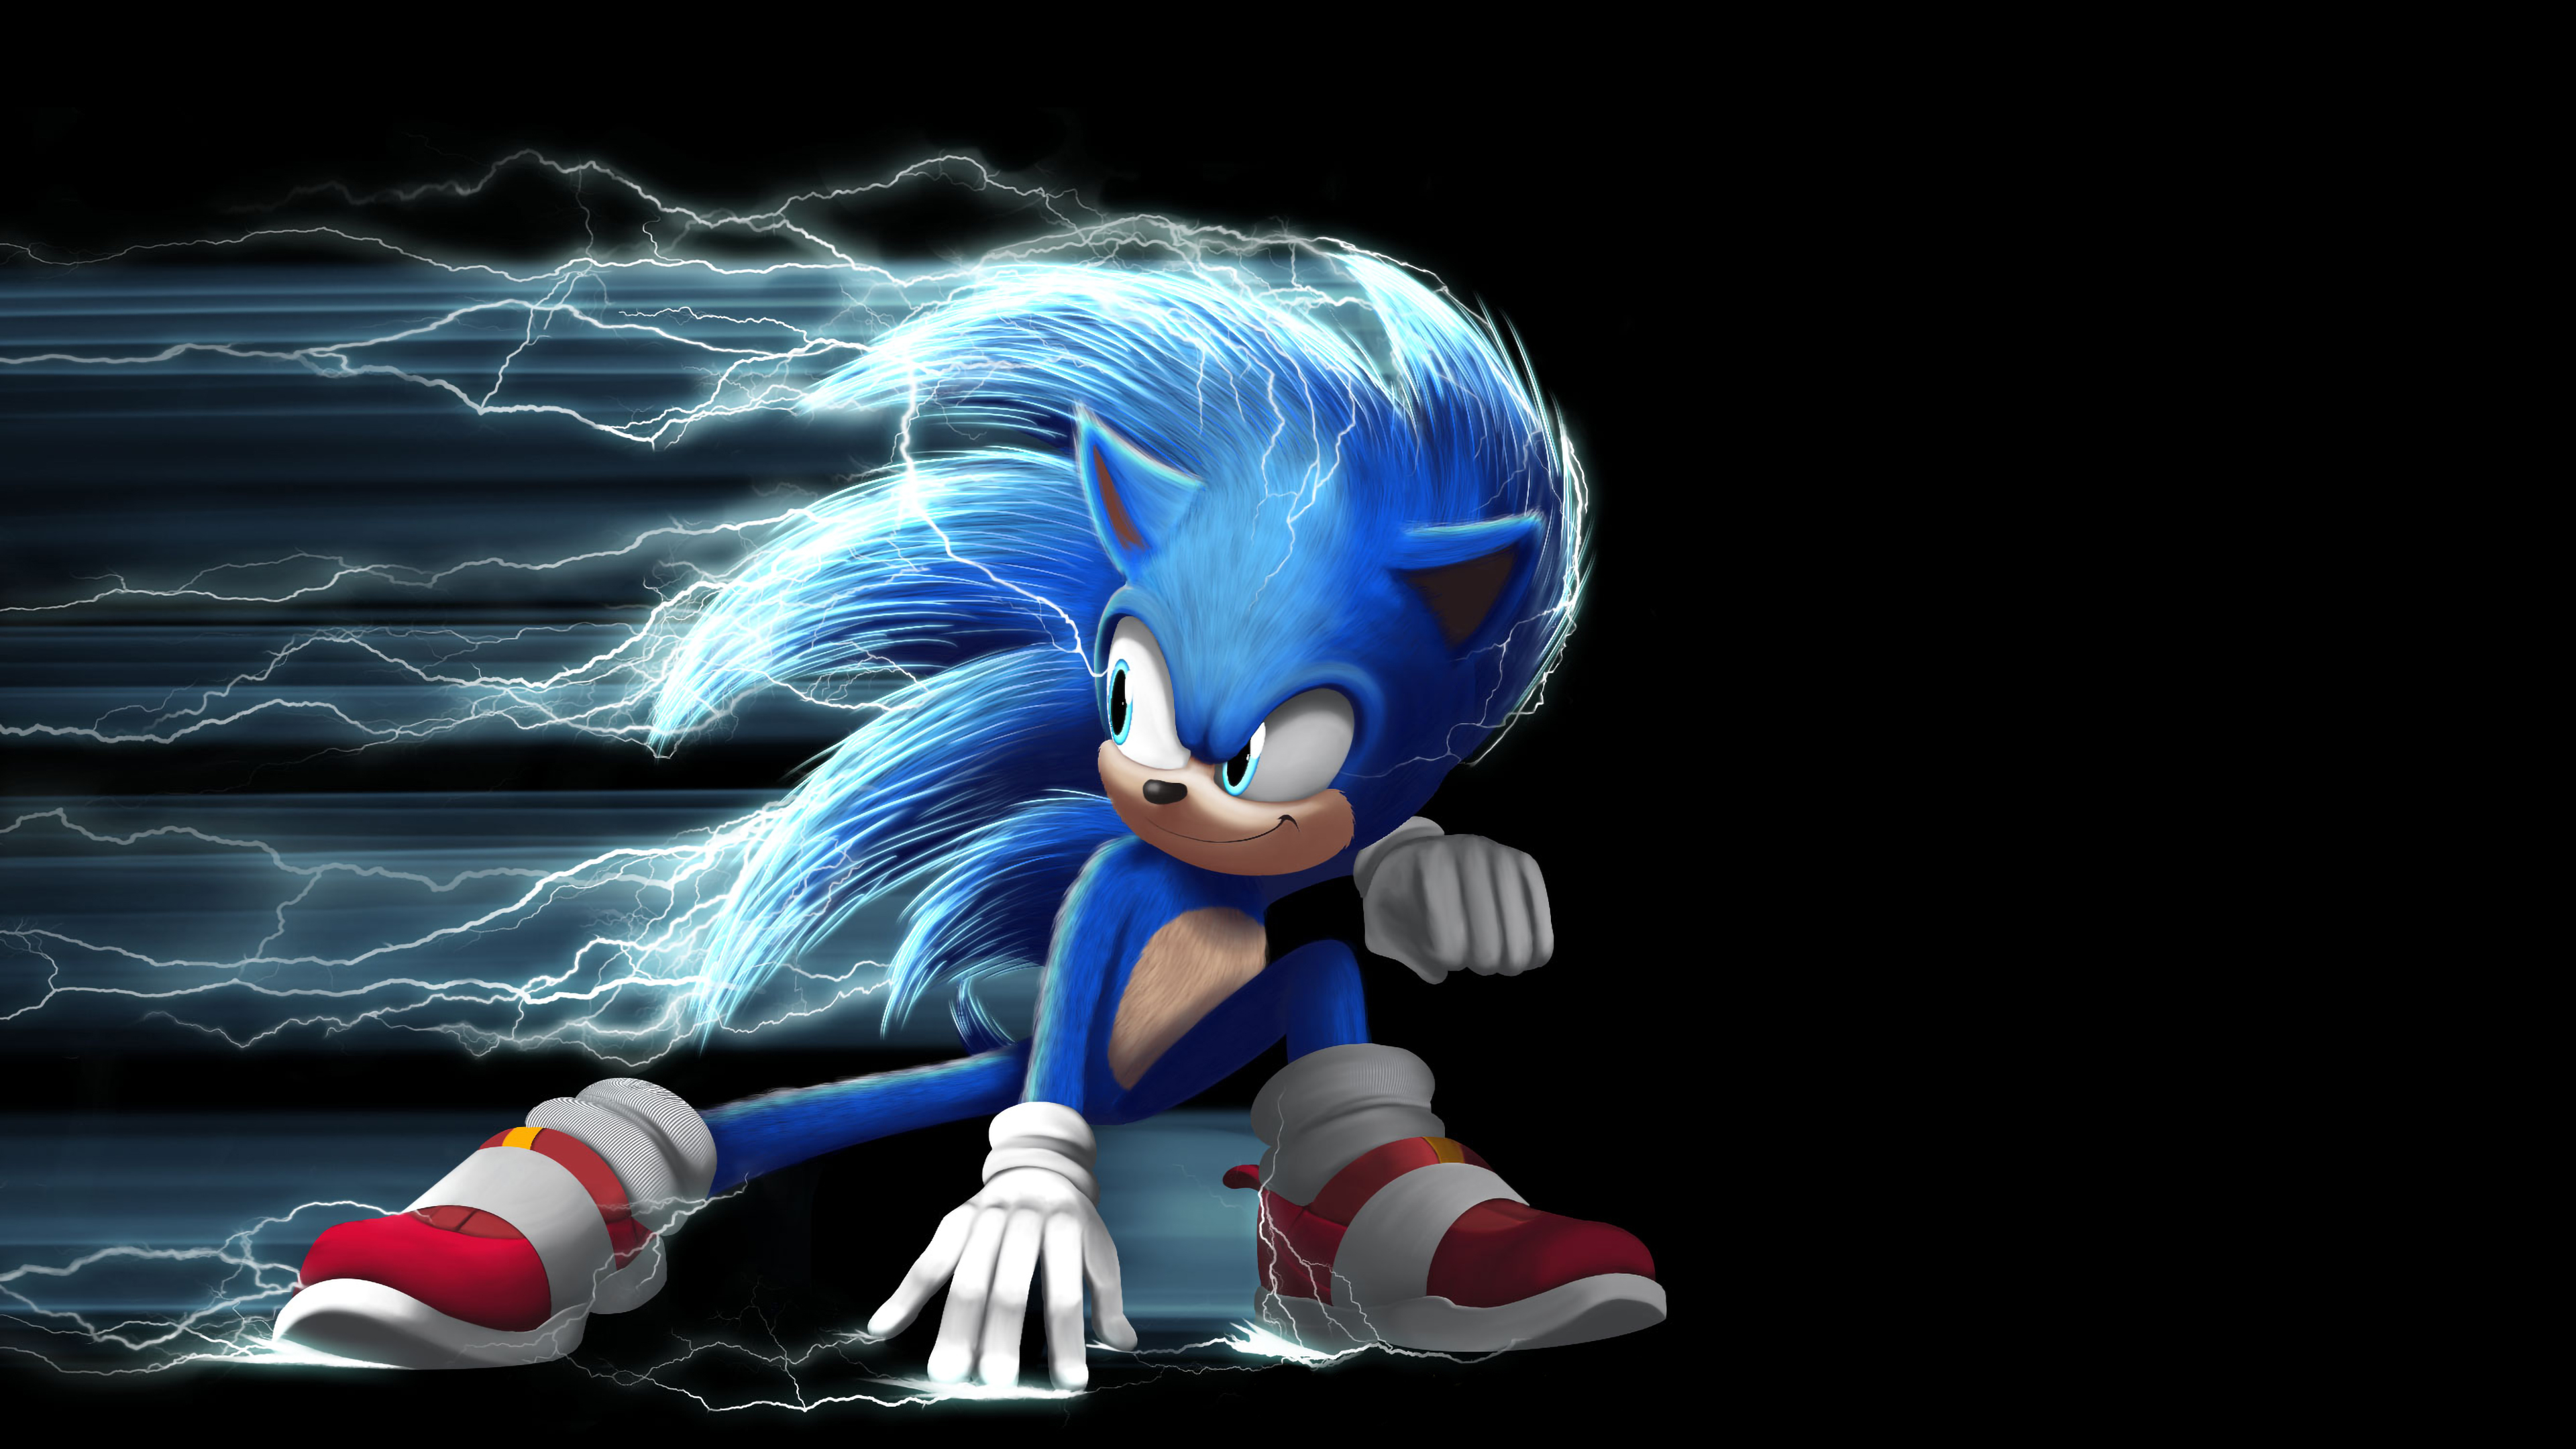 Sonic Movie 4k Wallpaper Hd Movies 4k Wallpapers Images Photos And Background